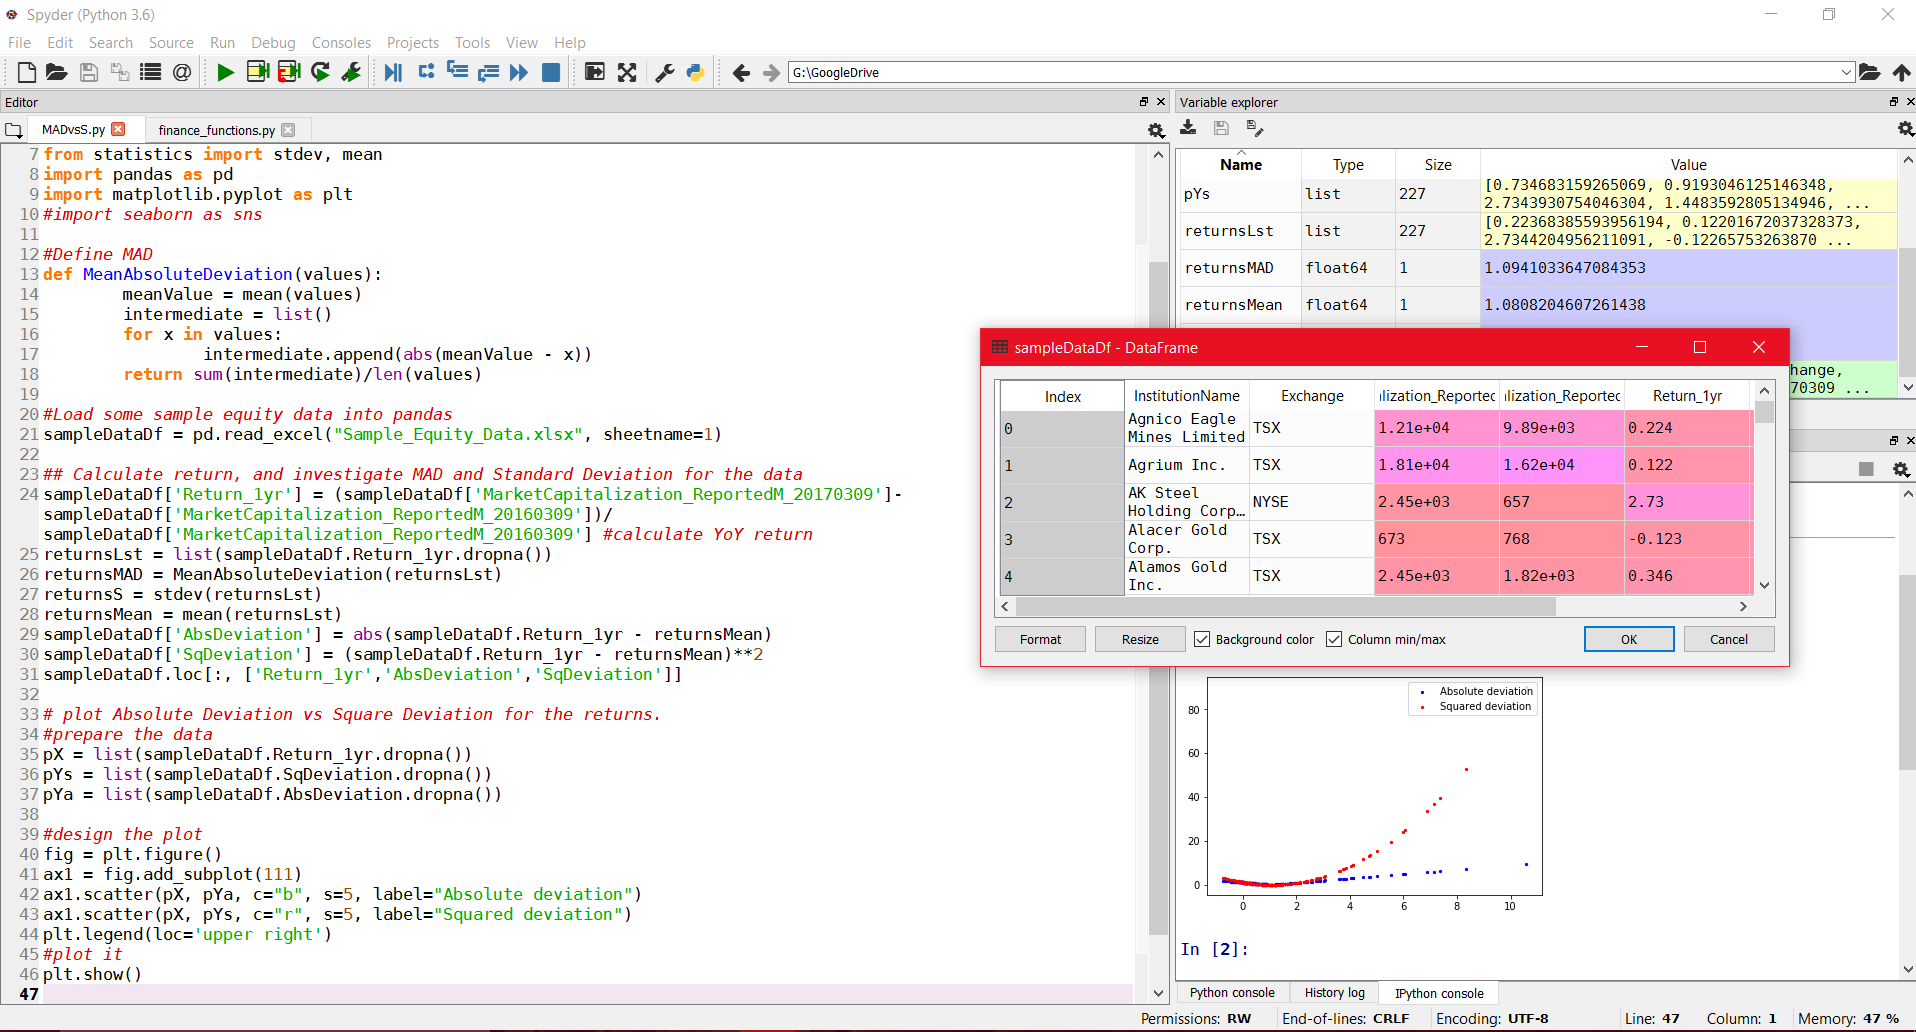 Screen grab of my Spyder workspace. The left hand side shows the complete script, with windows displaying variables and their values, data tables, interactive help, and in the bottom right corner, the IPython console, where graphs and outputs from operations are displayed.